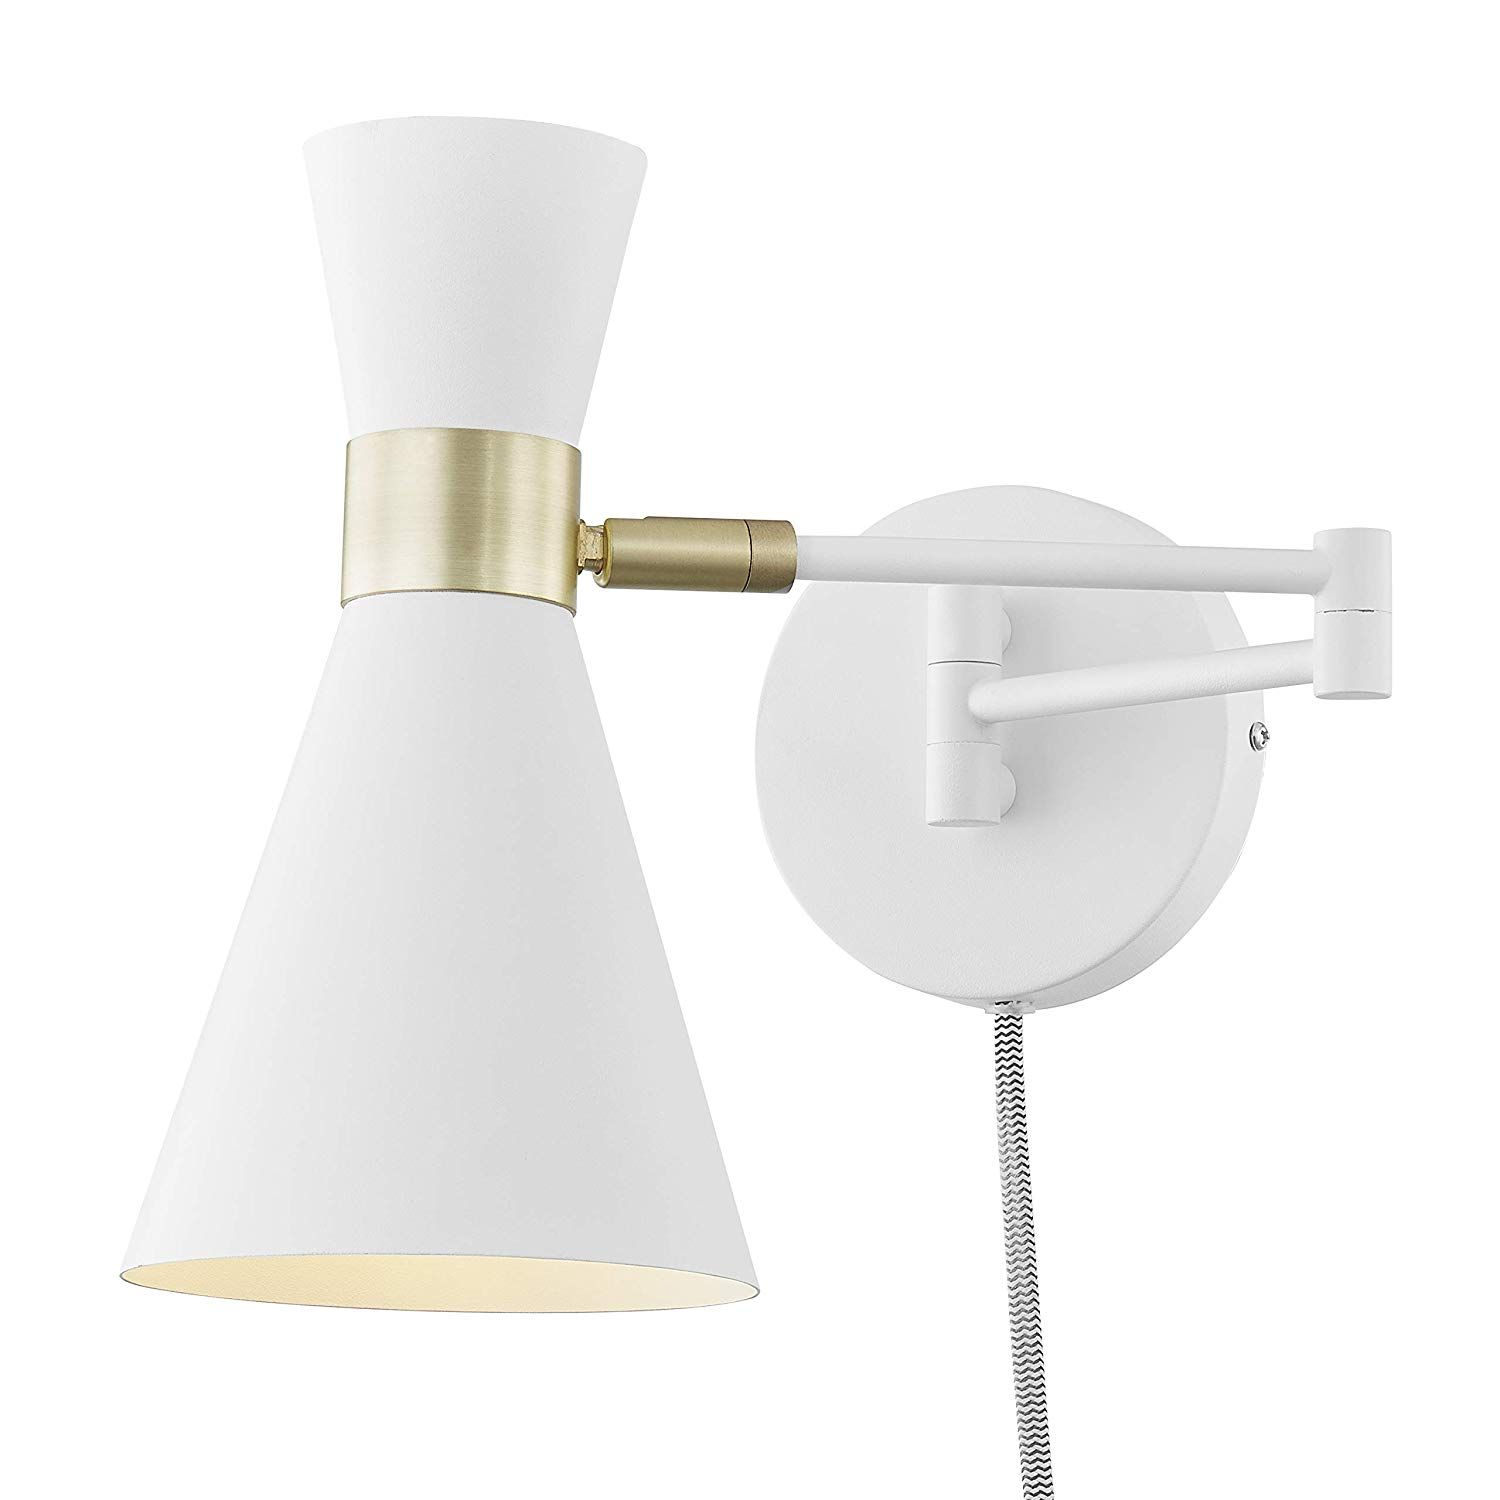 Light Society Beaker Plug In Wall Sconce In Matte White With Swivel Arm And Brass Details Modern Mid Century Retro St Plug In Wall Sconce Wall Sconces Sconces